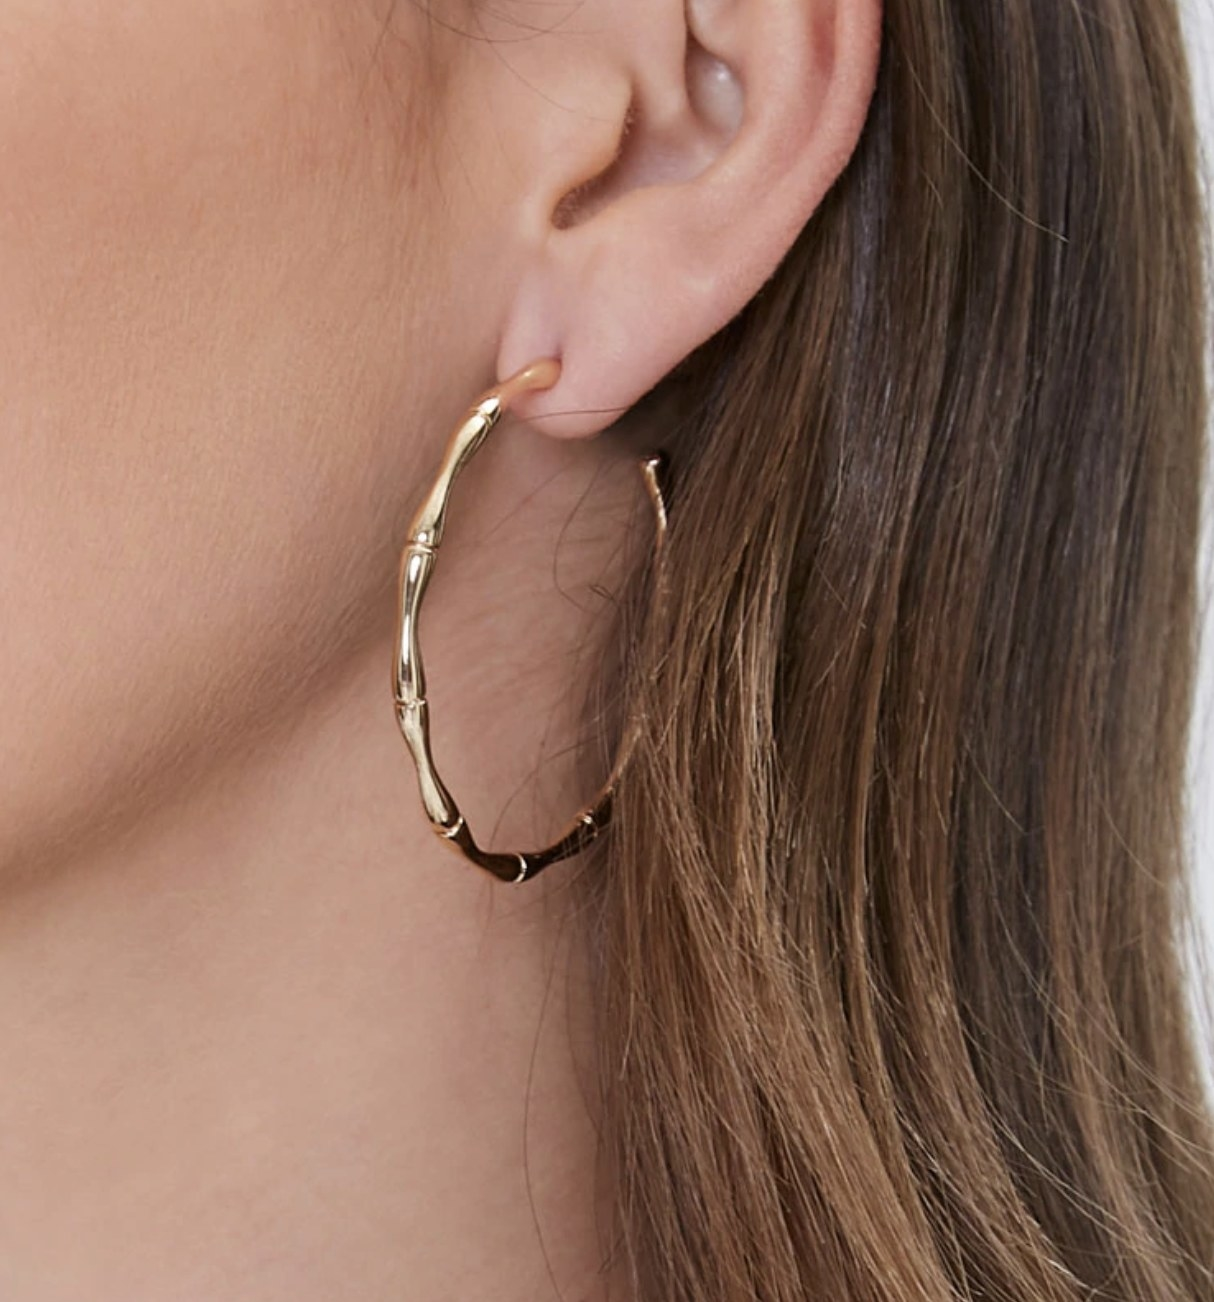 Model is wearing gold hoop earrings